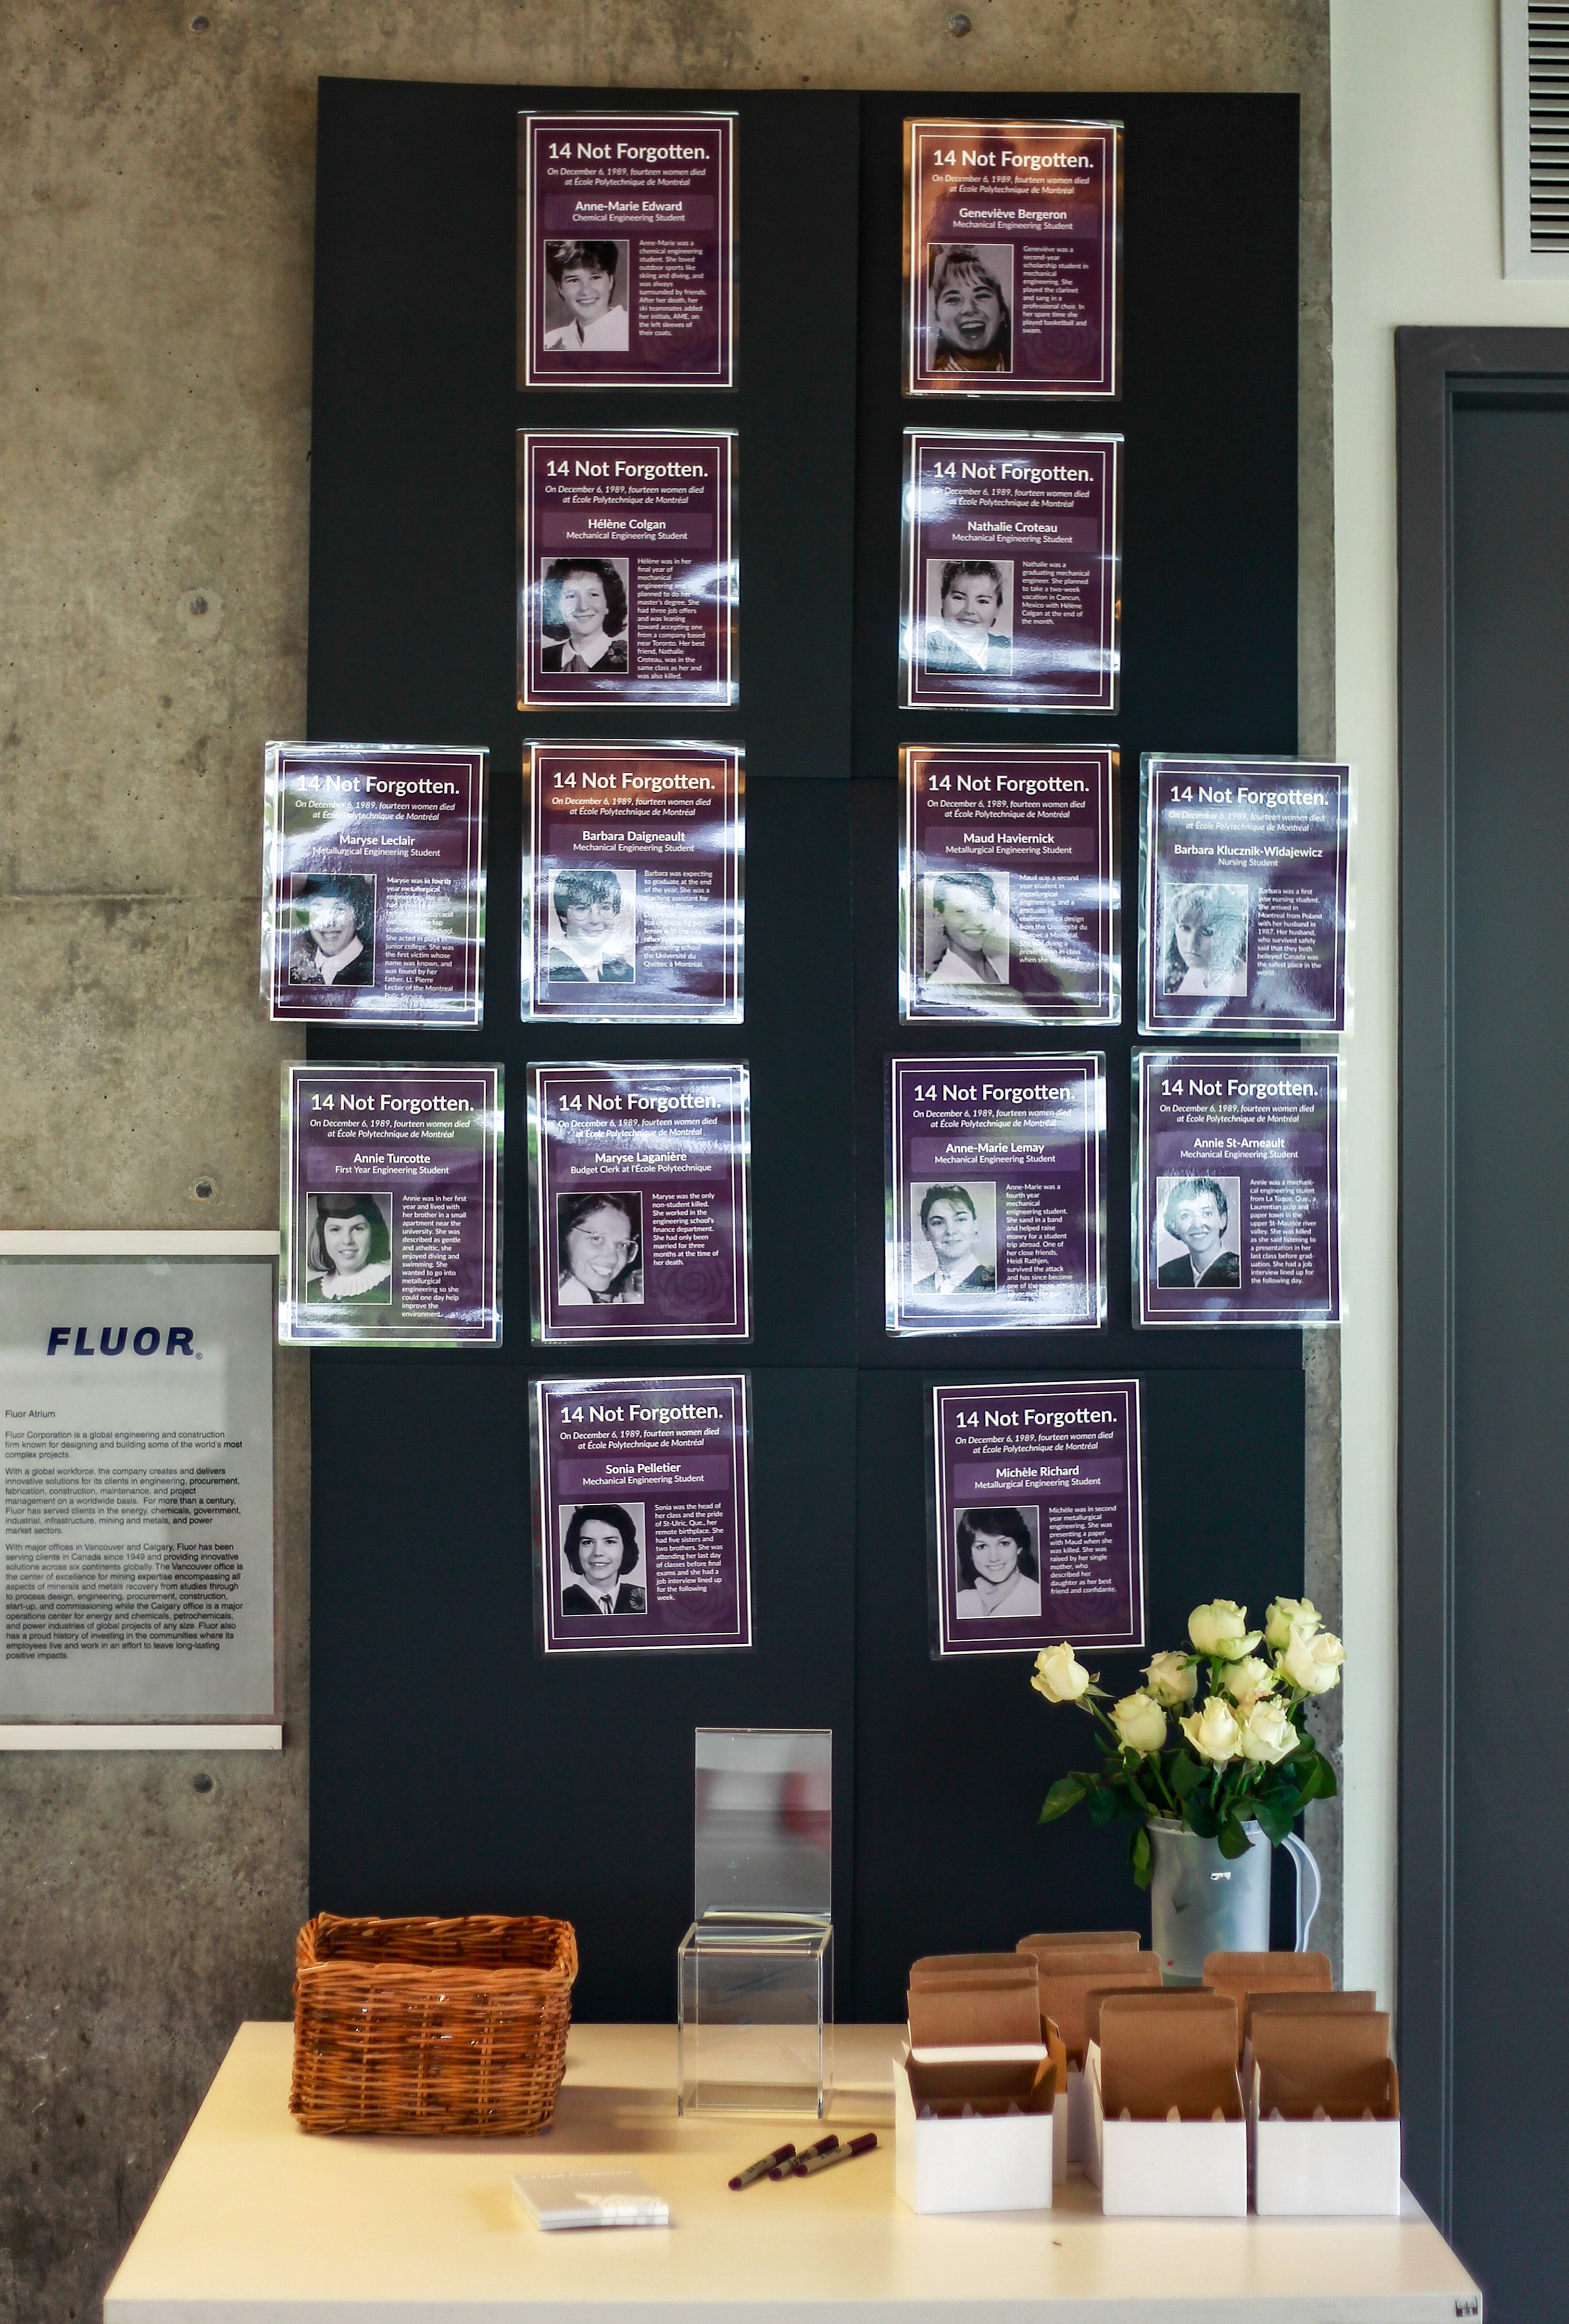 In 1989, a gunman killed 14 women engineers at École Polytechnique in Montreal on the basis of their gender.